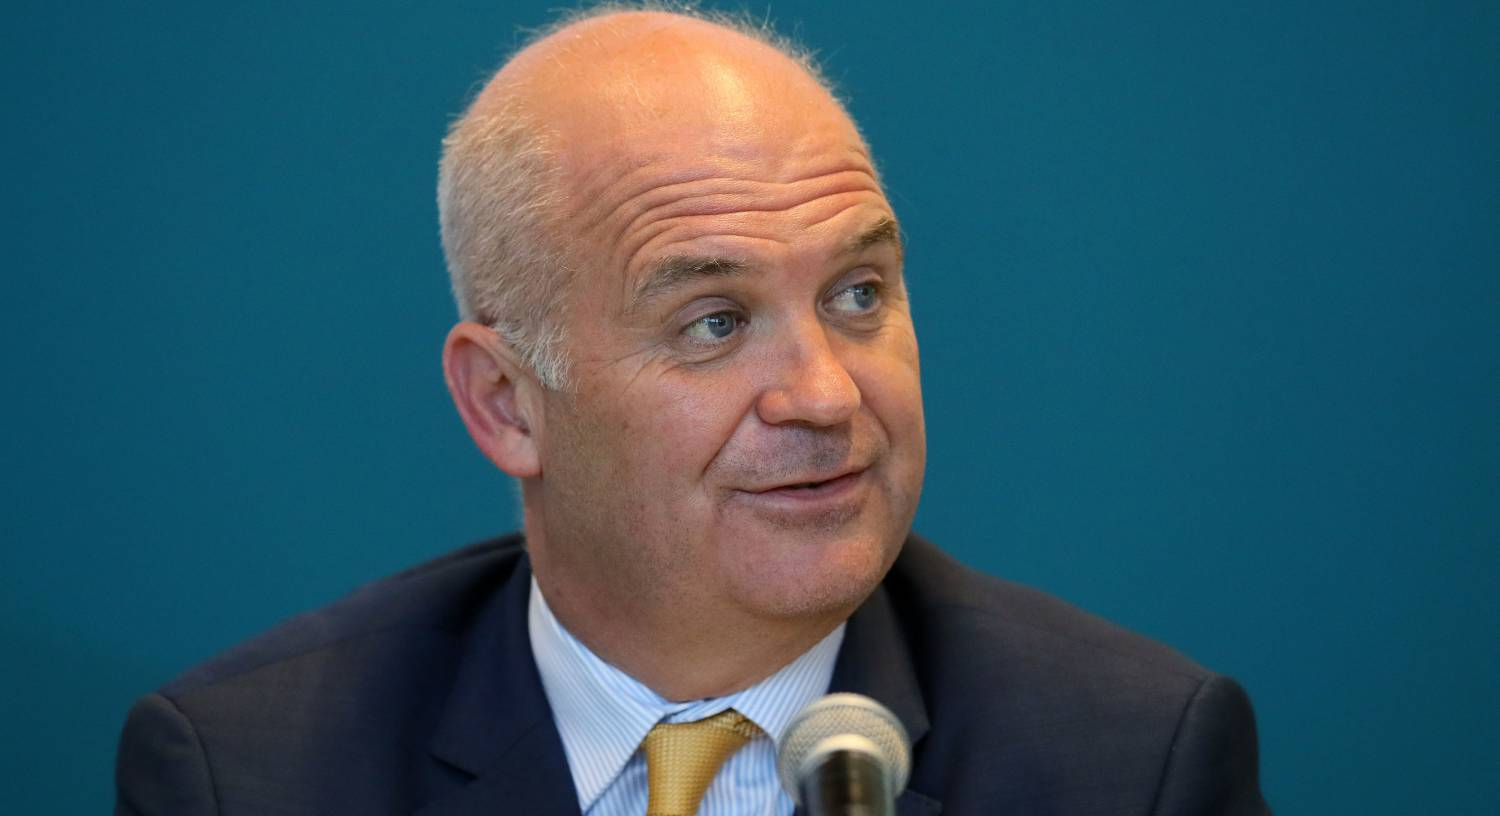 Tony Holohan steps down from CMO duties to care for ill wife